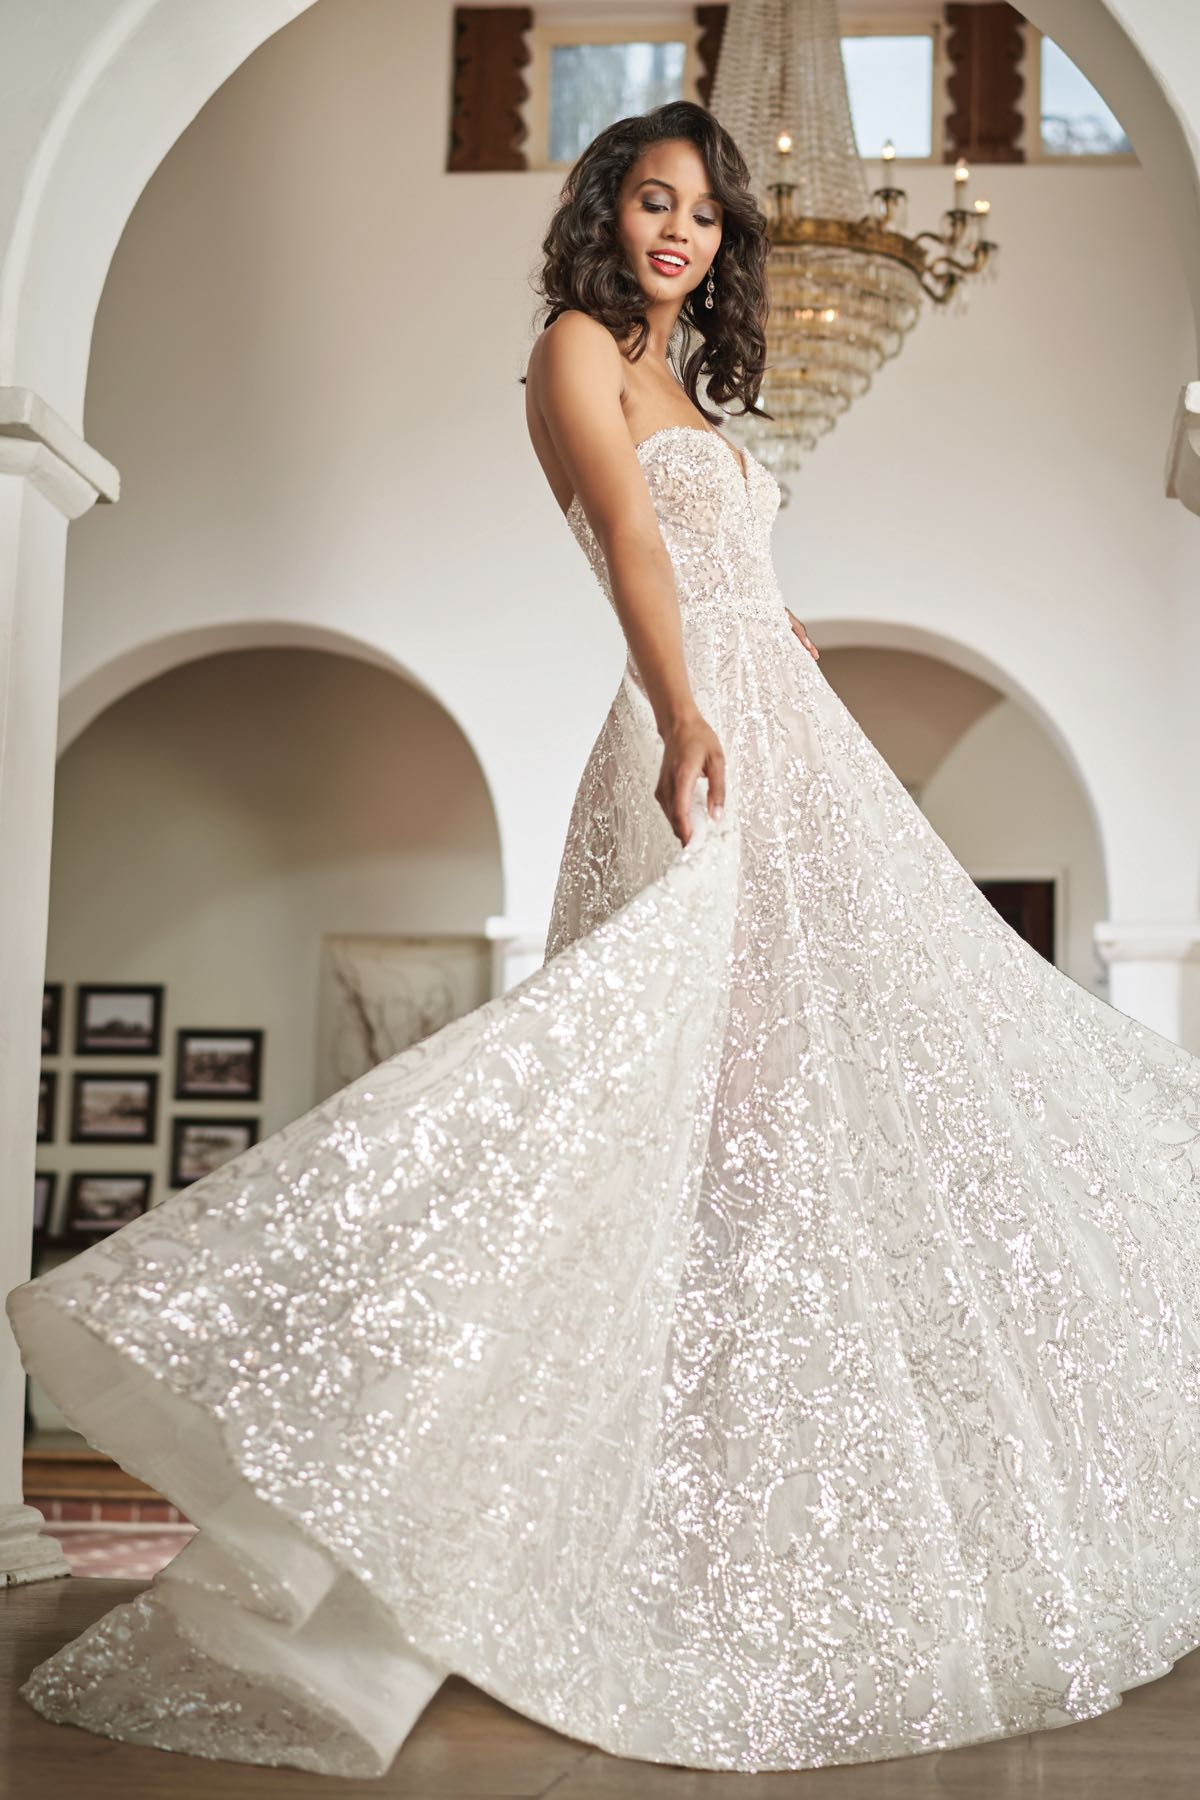 T212063 Gorgeous Sequin Lace Ball Gown With Strapless Sweatheart Neckline,Wedding Dresses For Big Busts